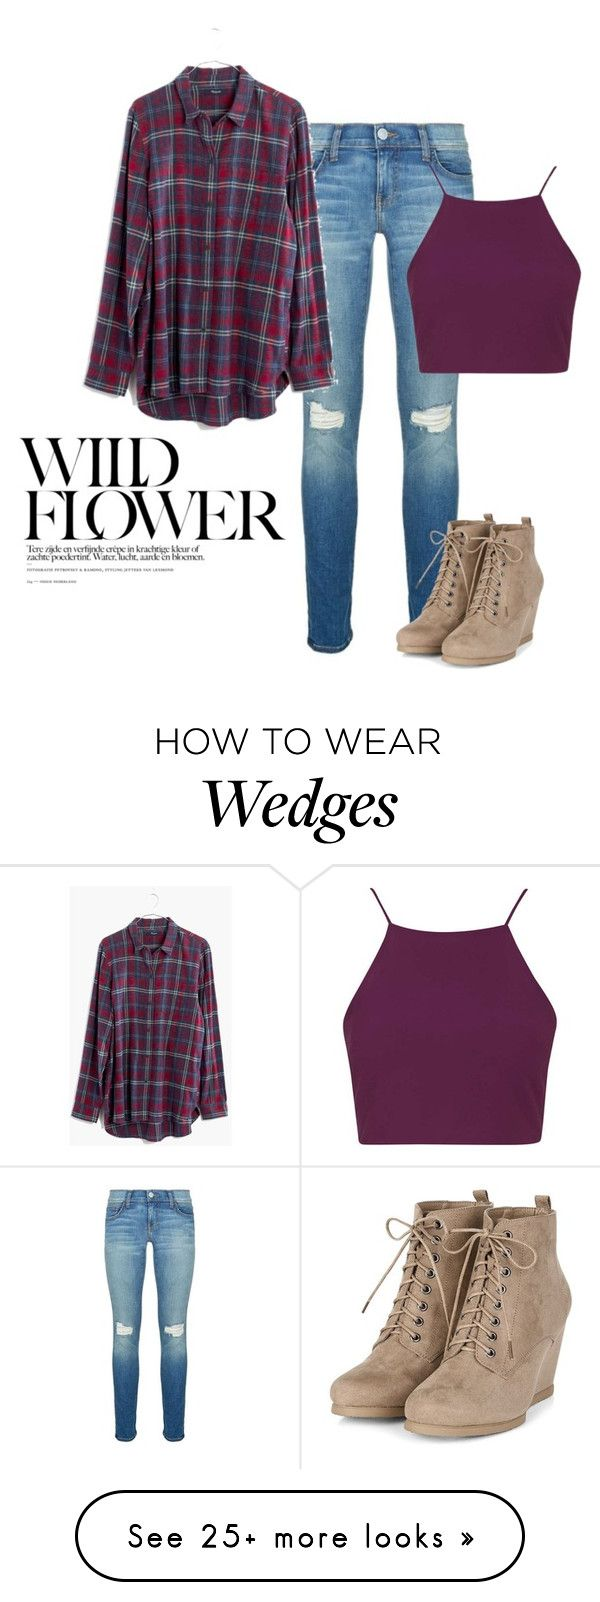 Wild Flower 3 by kragrg on Polyvore featuring Rebecca Minkoff, Madewell and Topshop